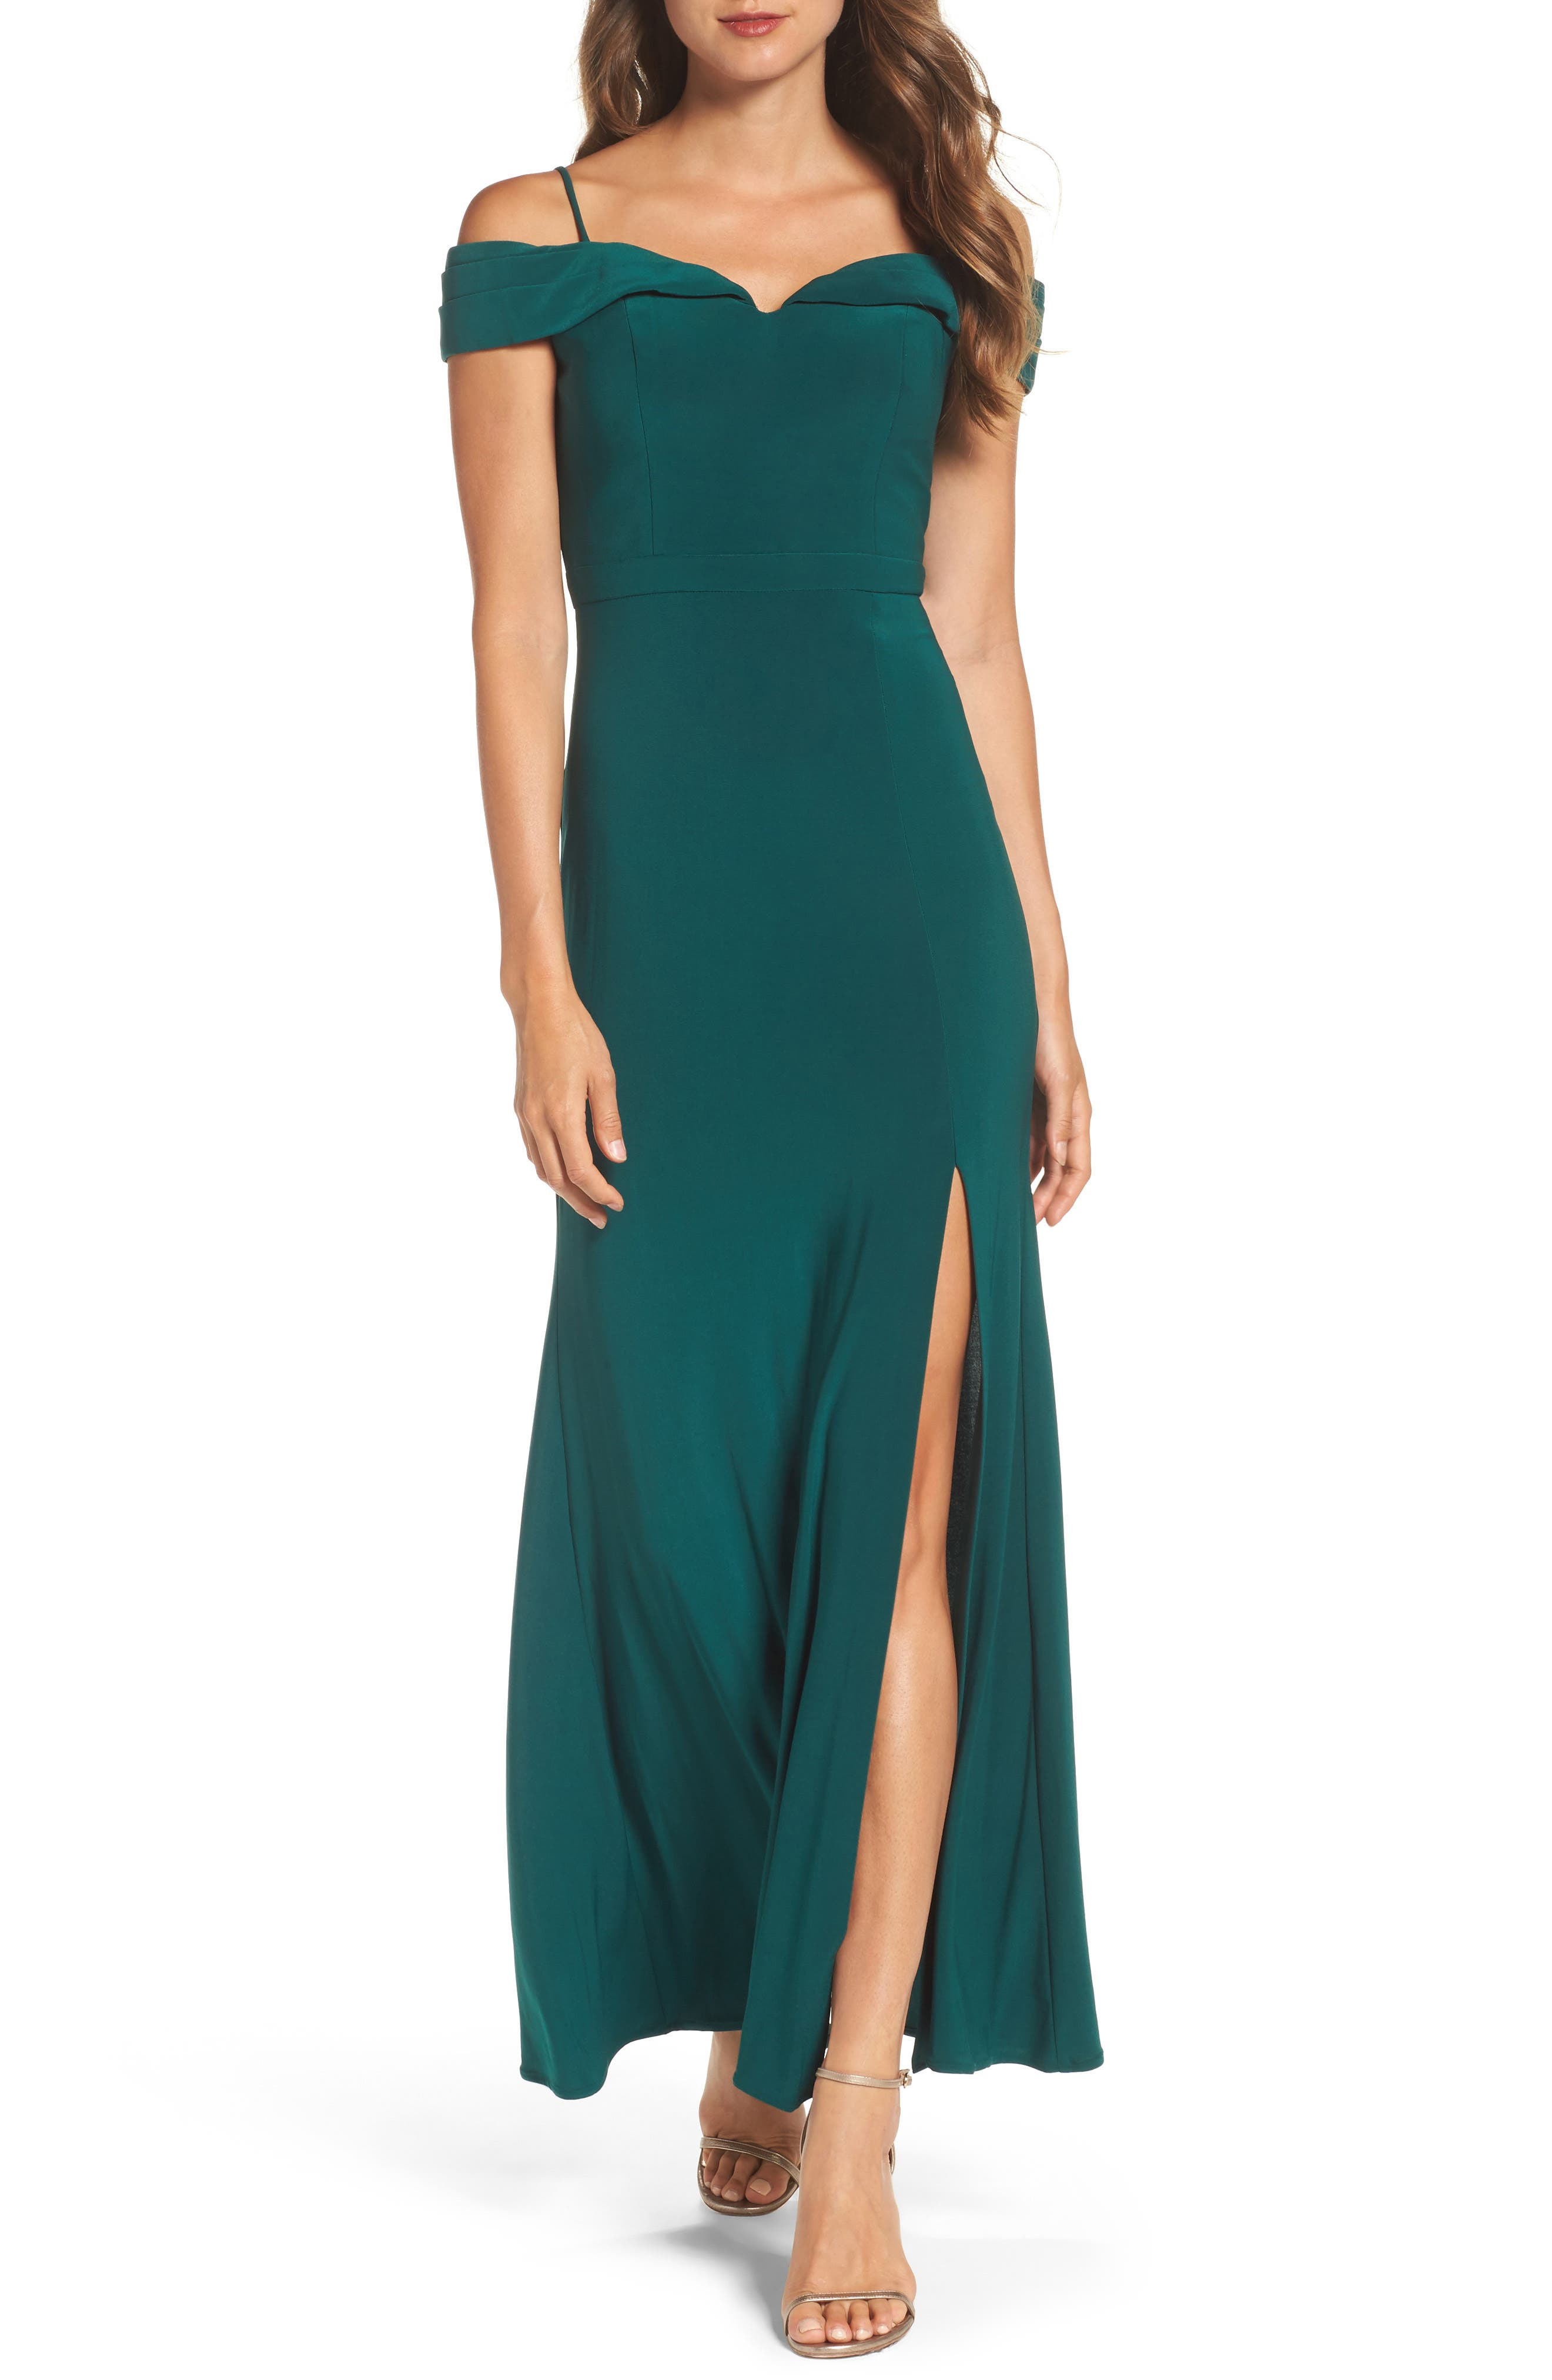 MORGAN & CO., Off the Shoulder Gown, Main thumbnail 1, color, PINE